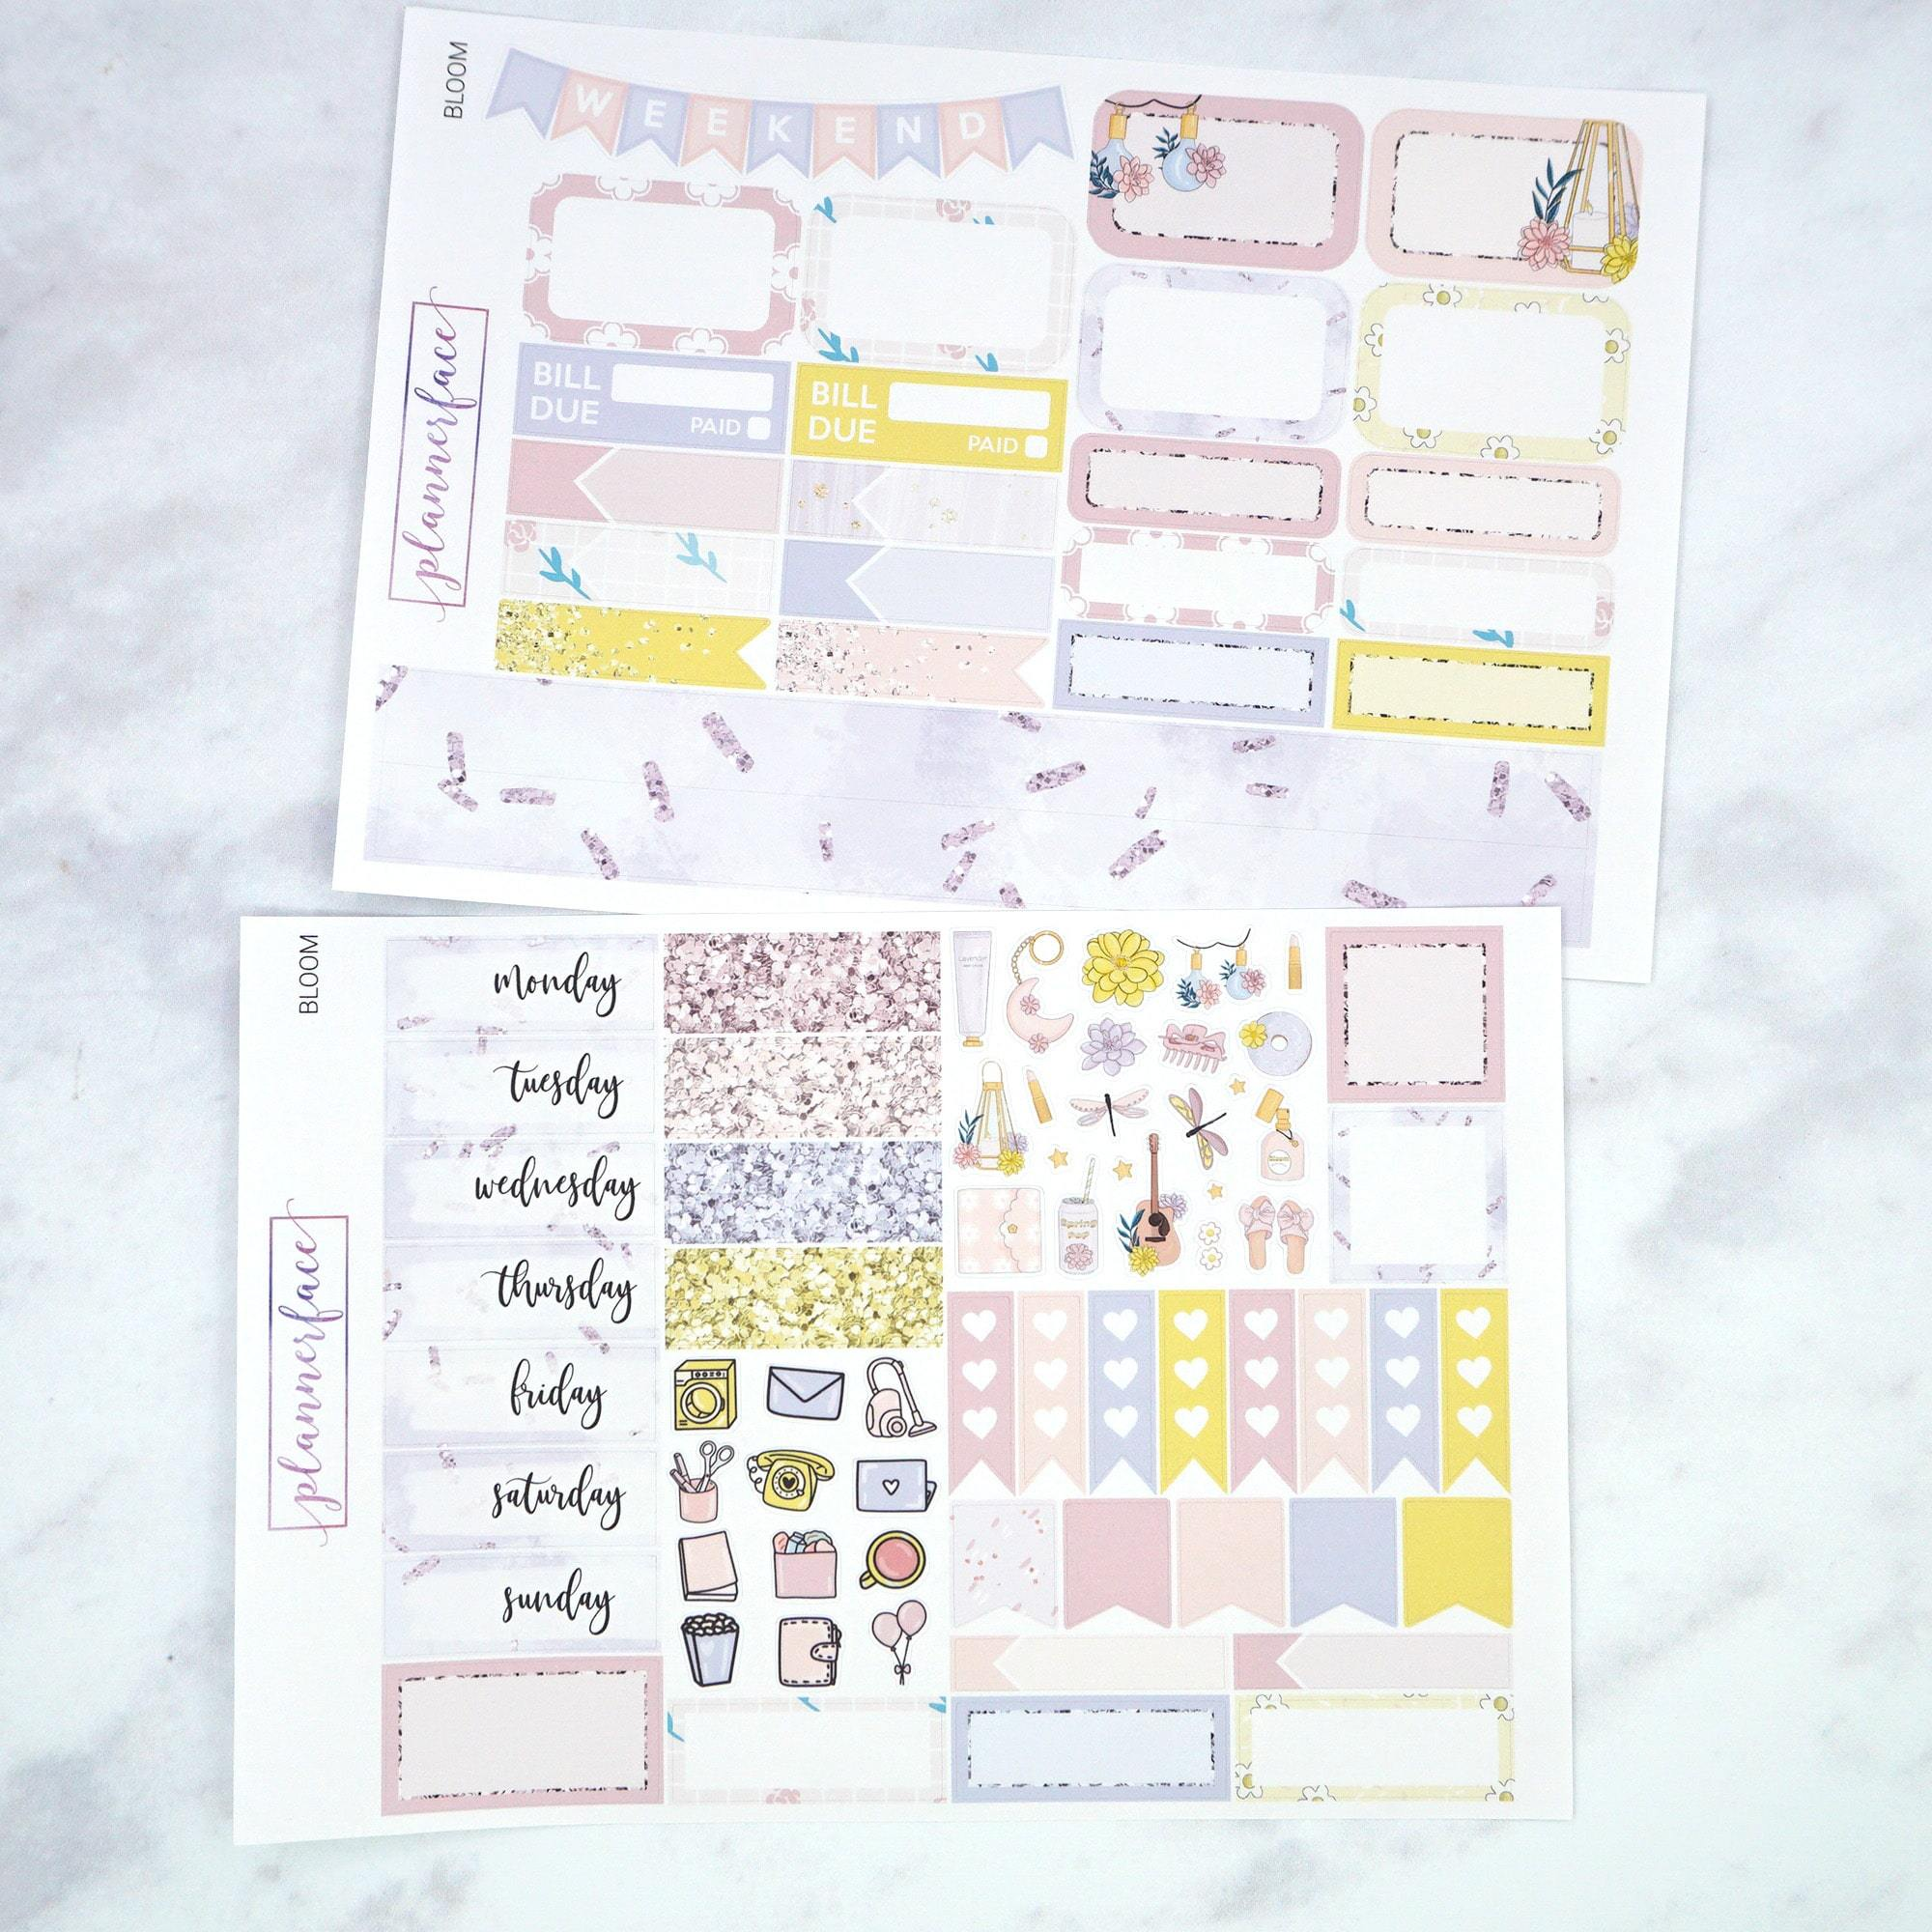 Plannerface Bloom Mini Kit Planner Stickers